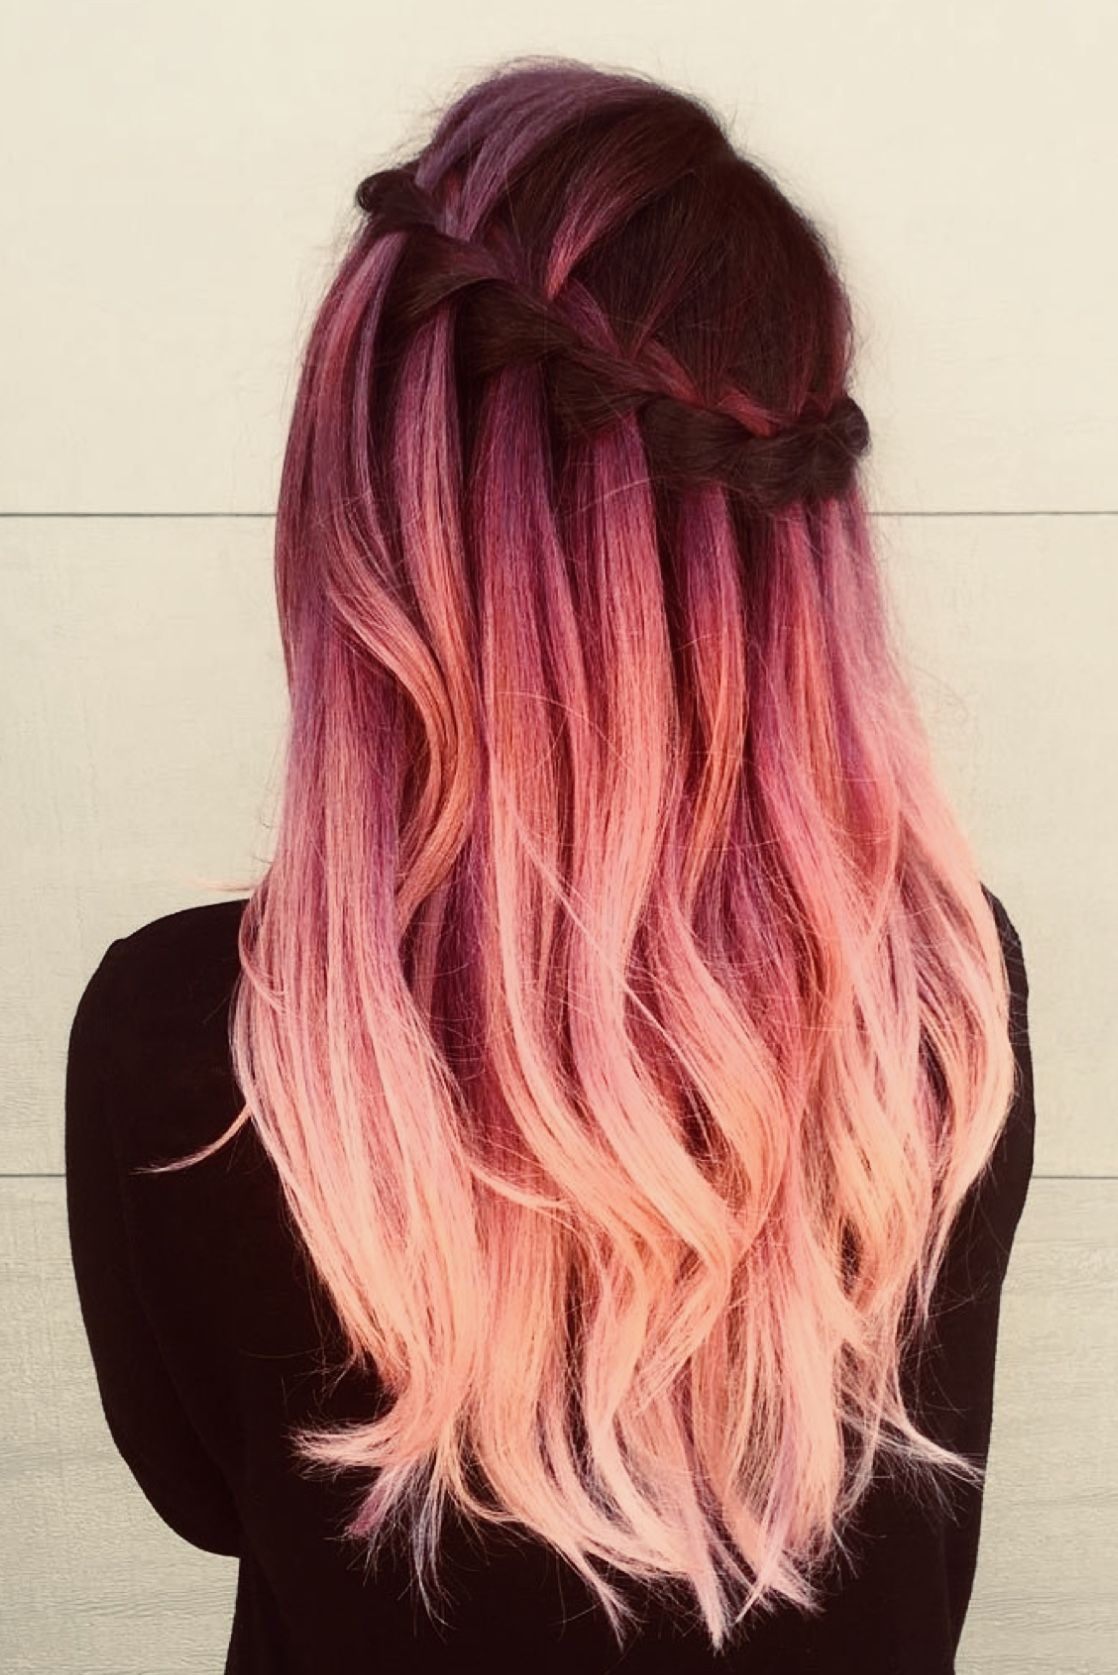 Waterfall braid pink hair  Hair styles, Cute hair colors, Long